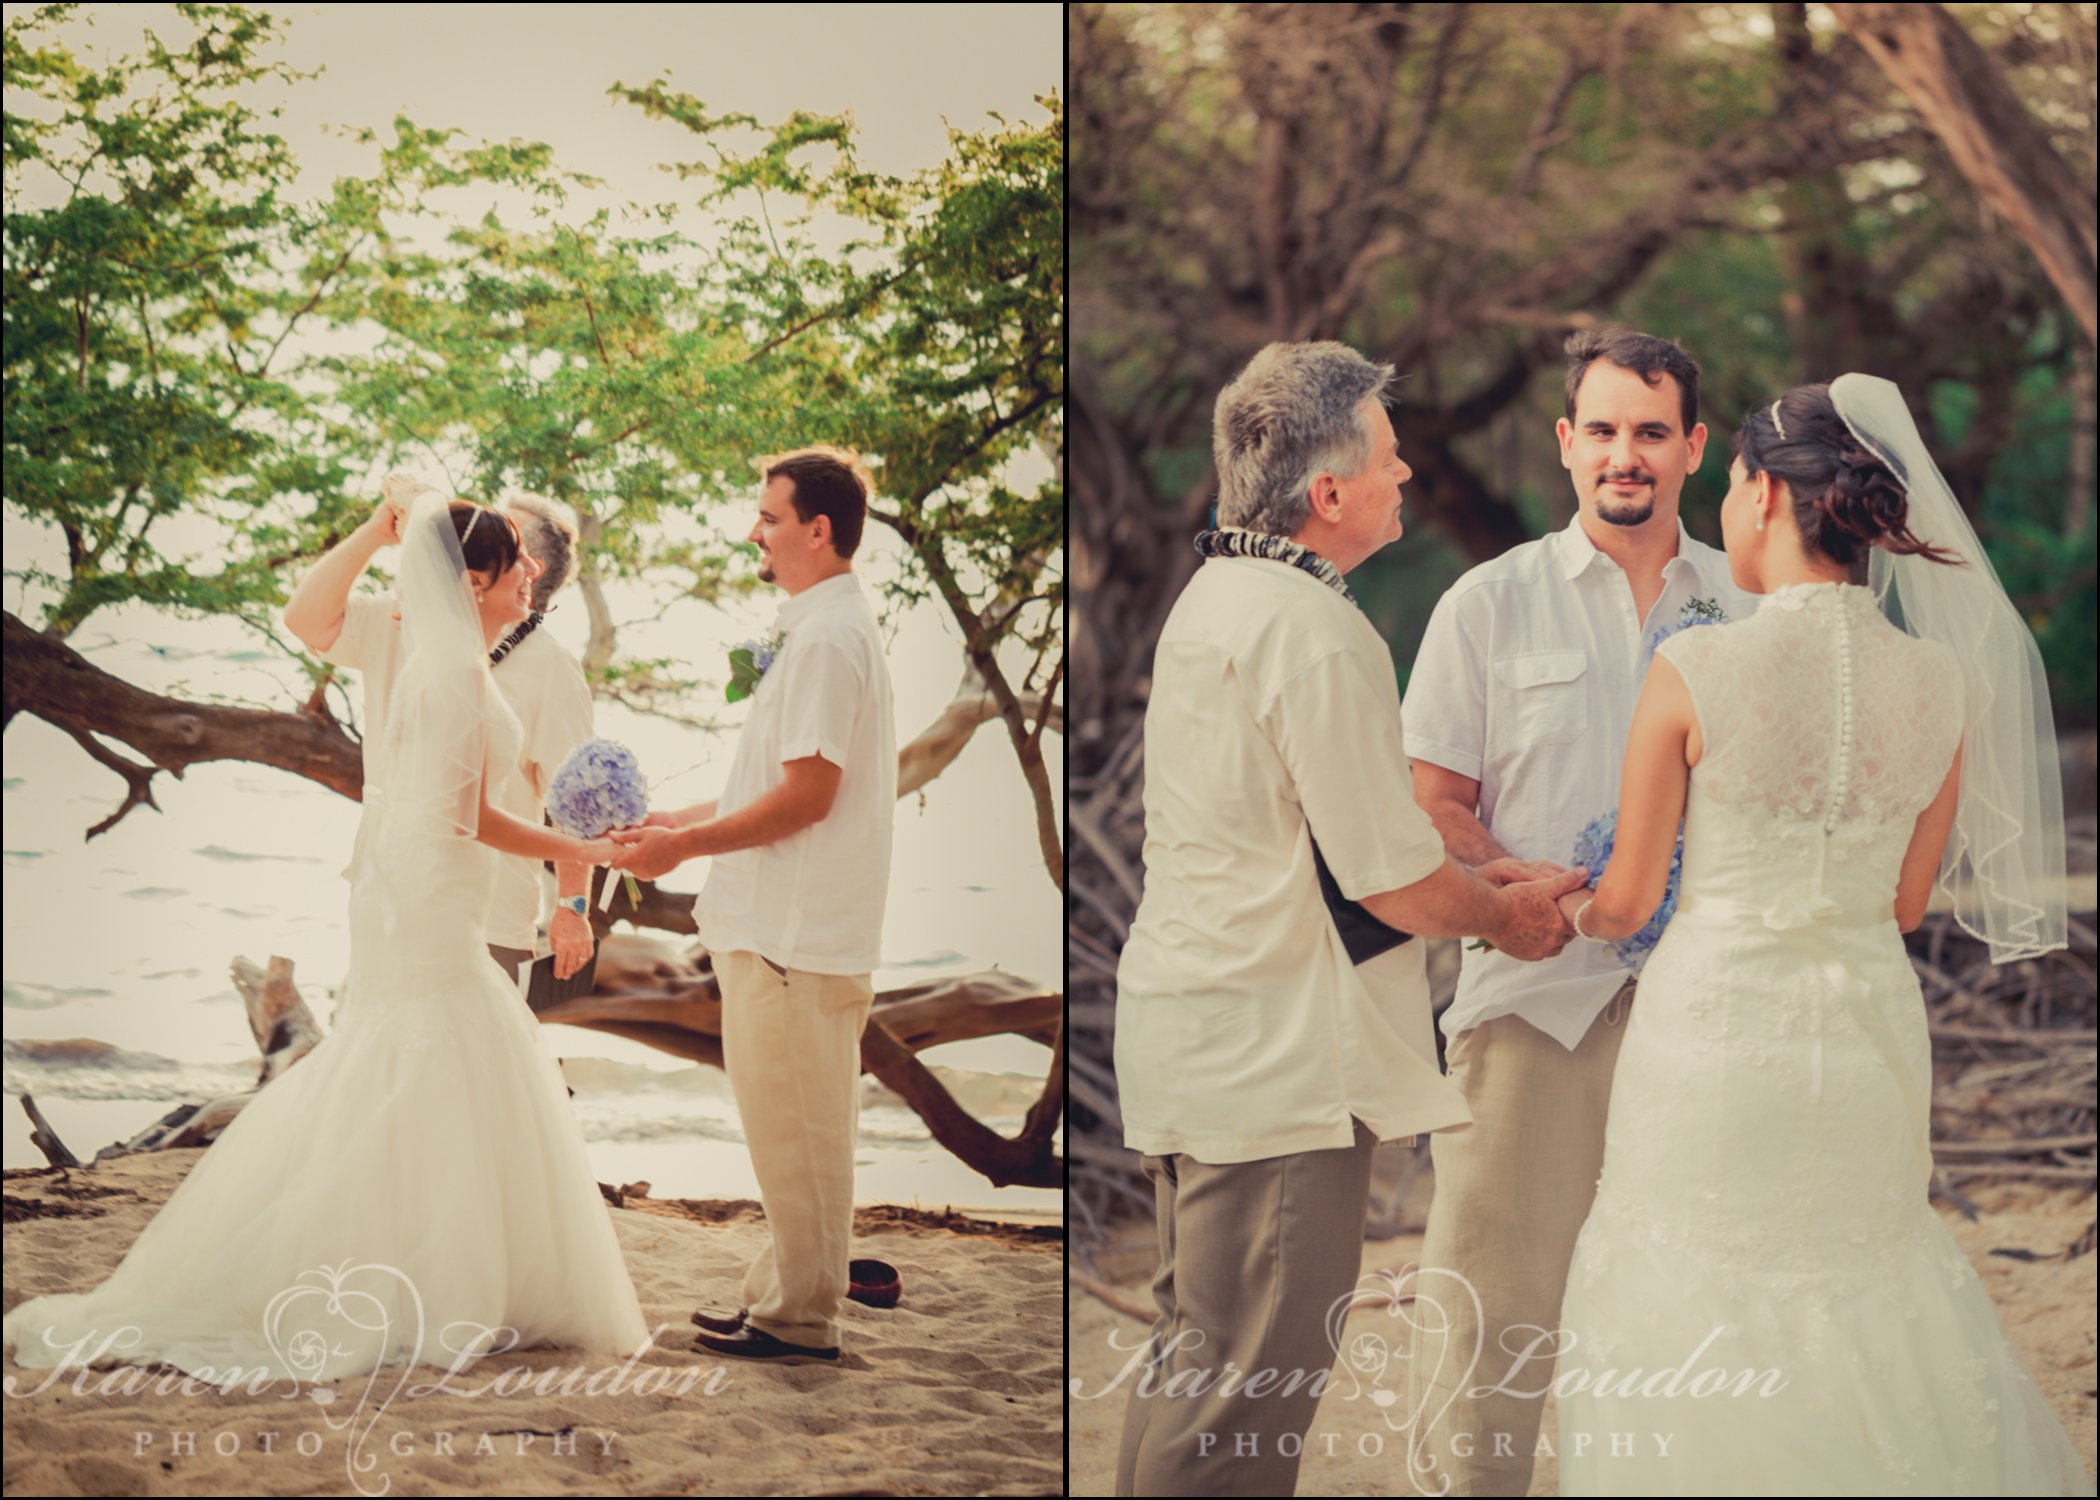 Kailua-Kona wedding photographer